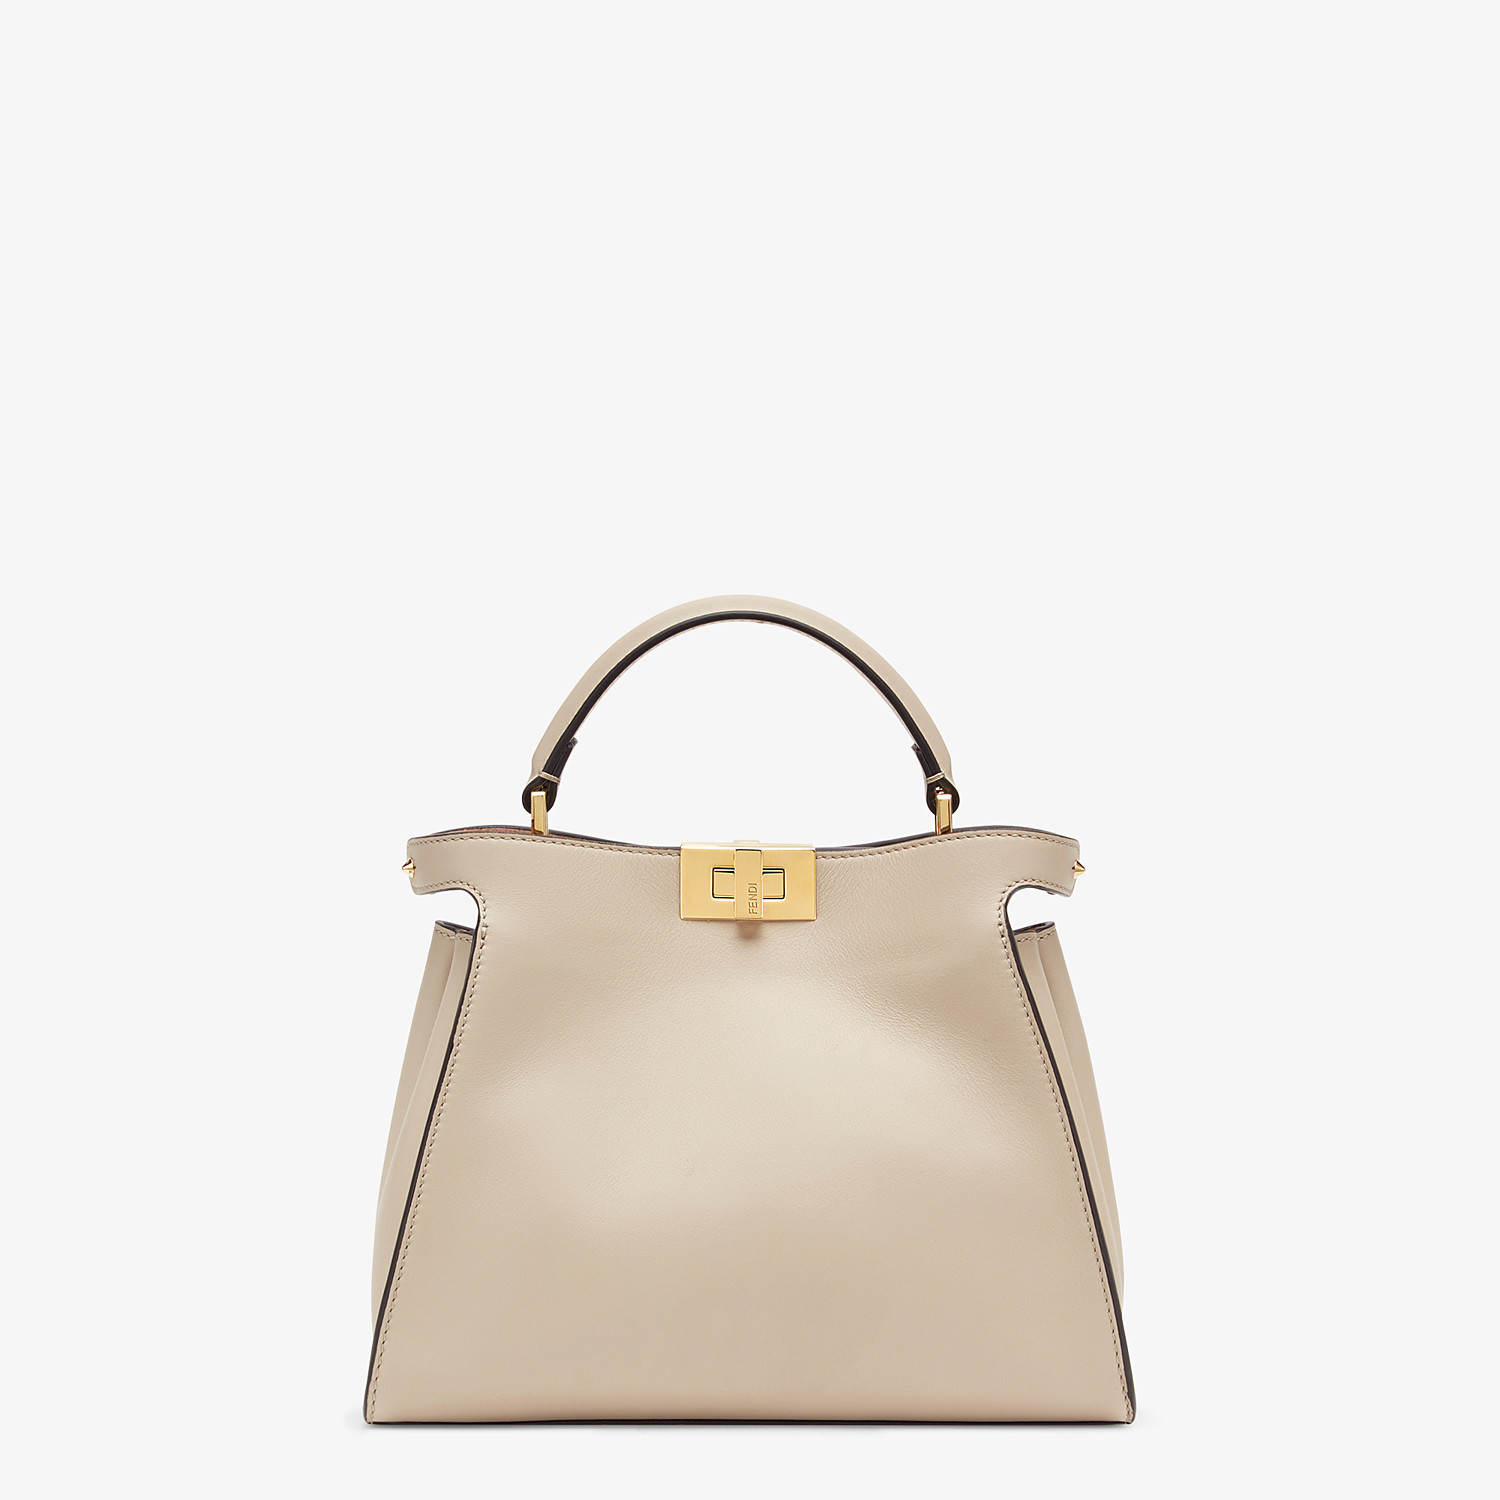 FENDI PEEKABOO ICONIC ESSENTIALLY - Tasche aus Leder in Beige - view 1 detail